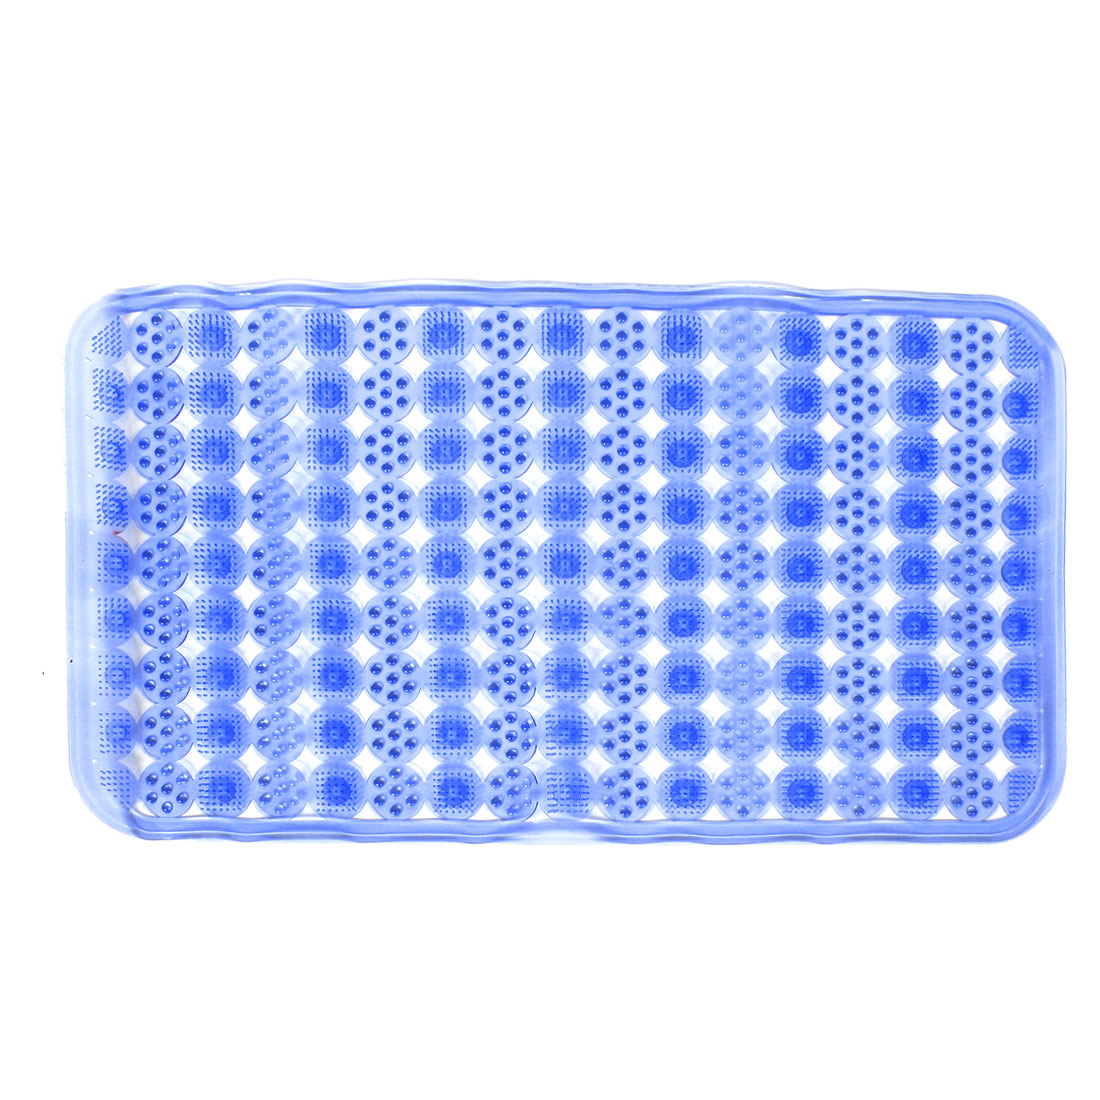 Rectangle Shape Bathroom Bath Shower Non Slip Suction Cups Mat